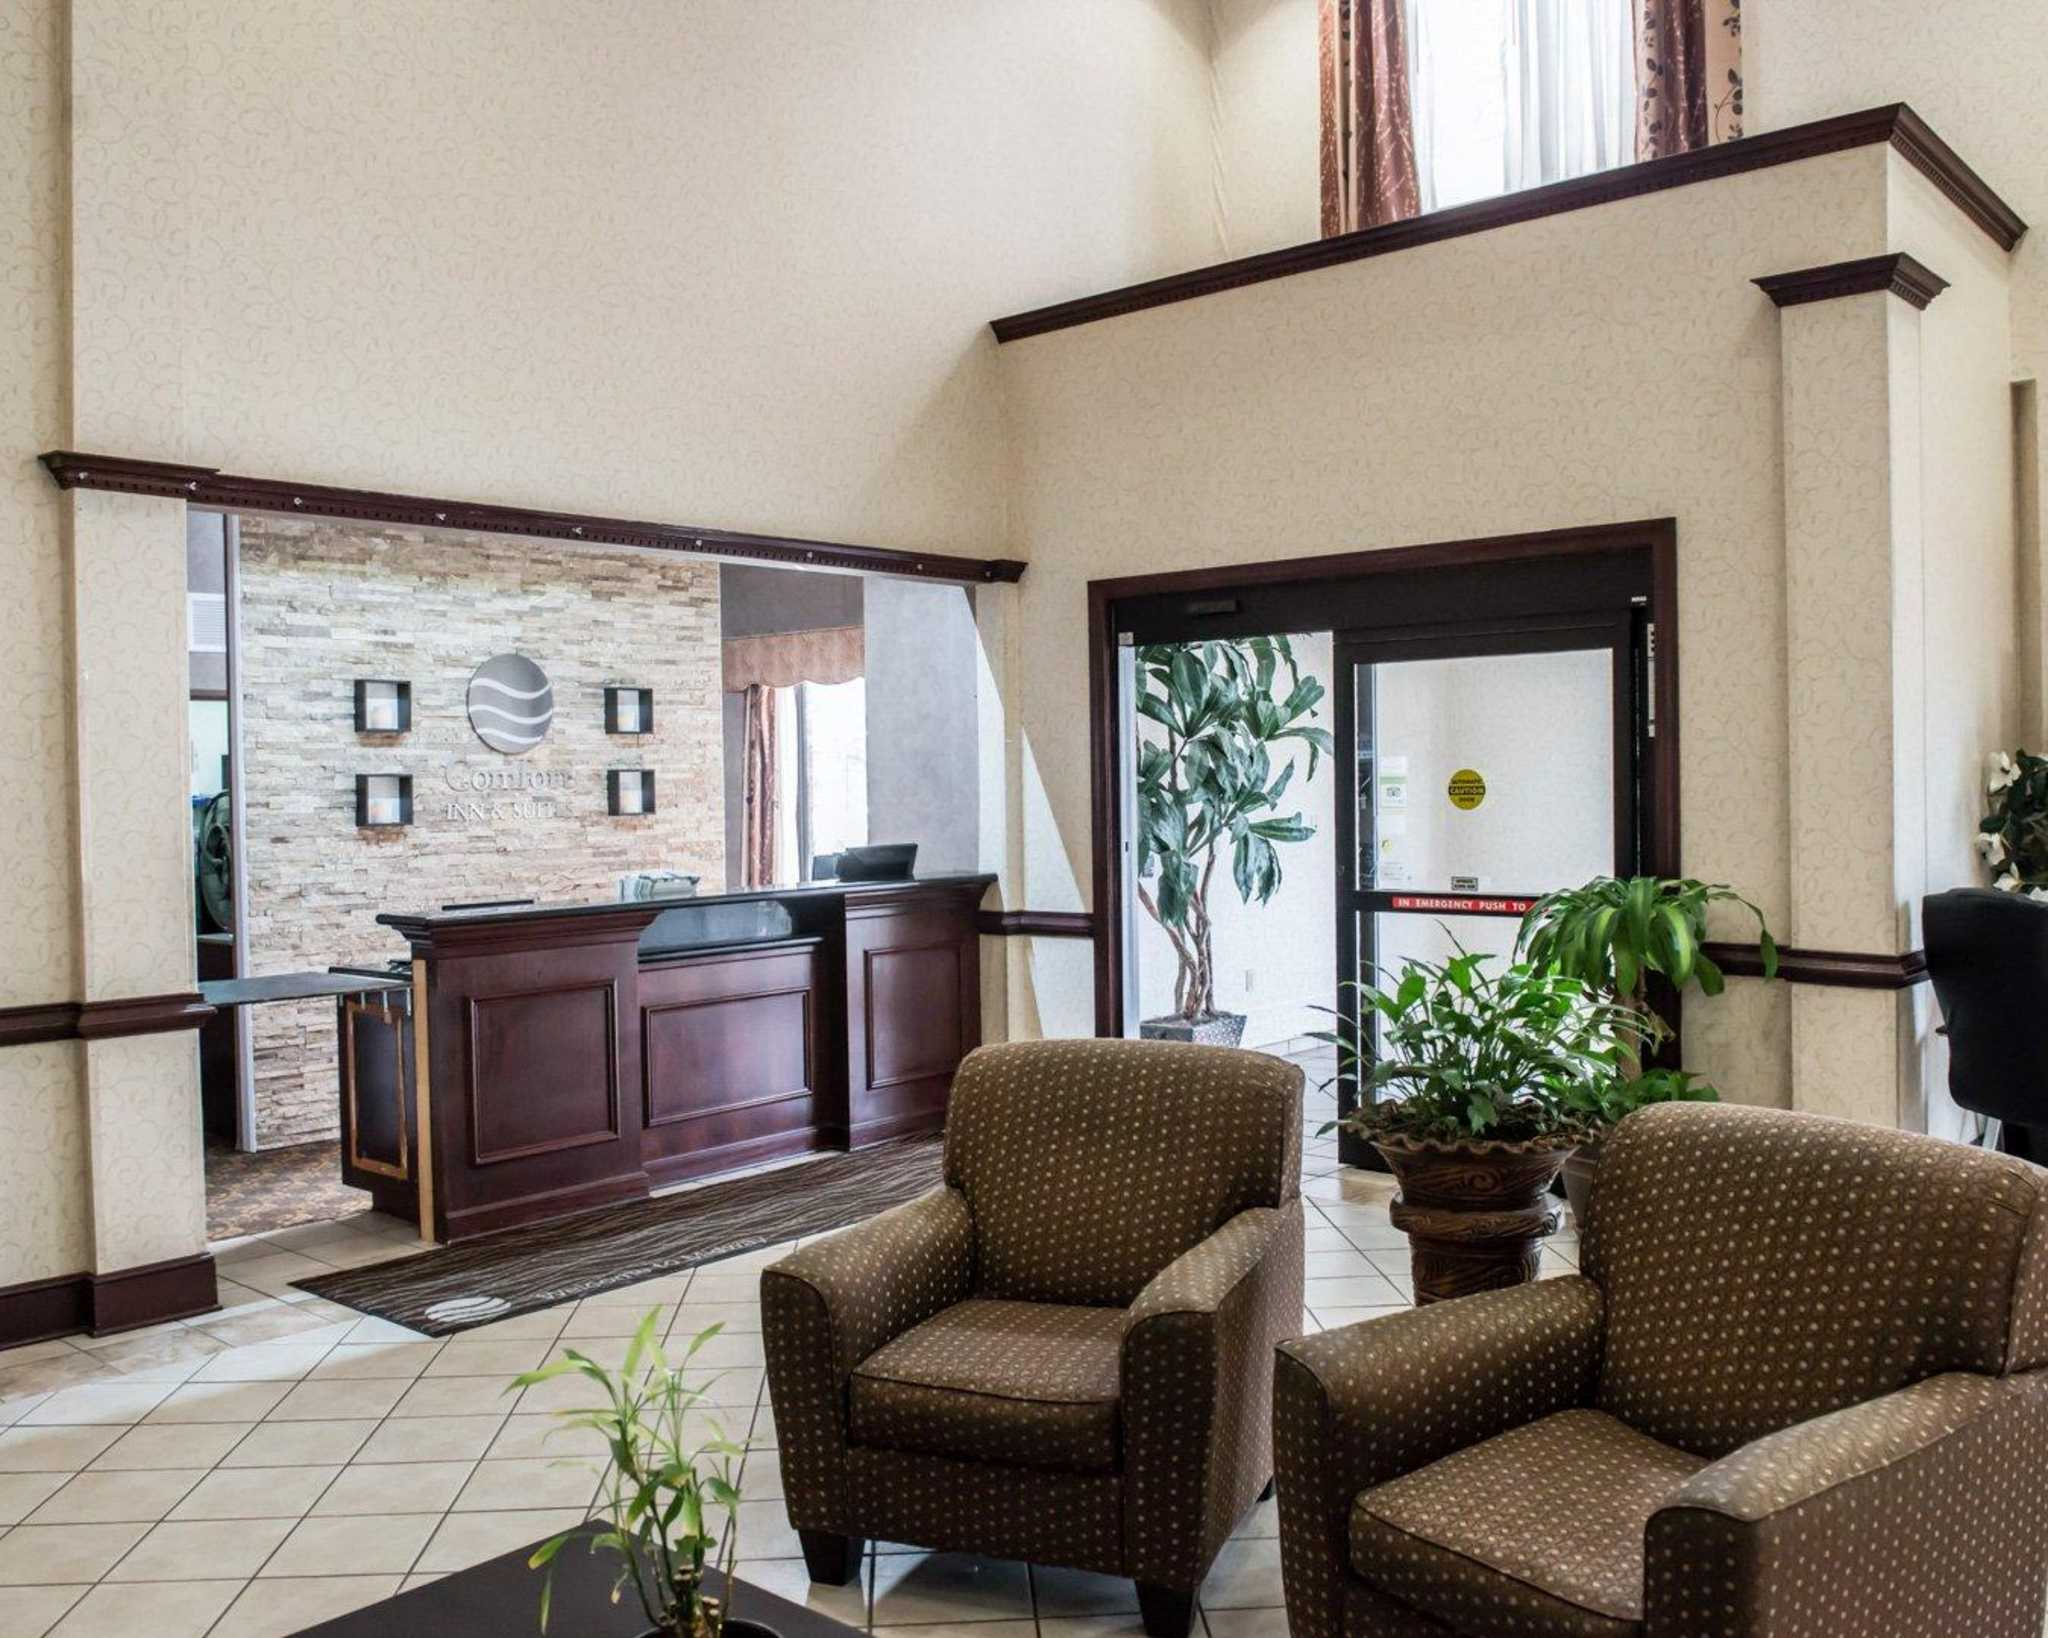 Comfort Inn & Suites Midway - Tallahassee West image 16